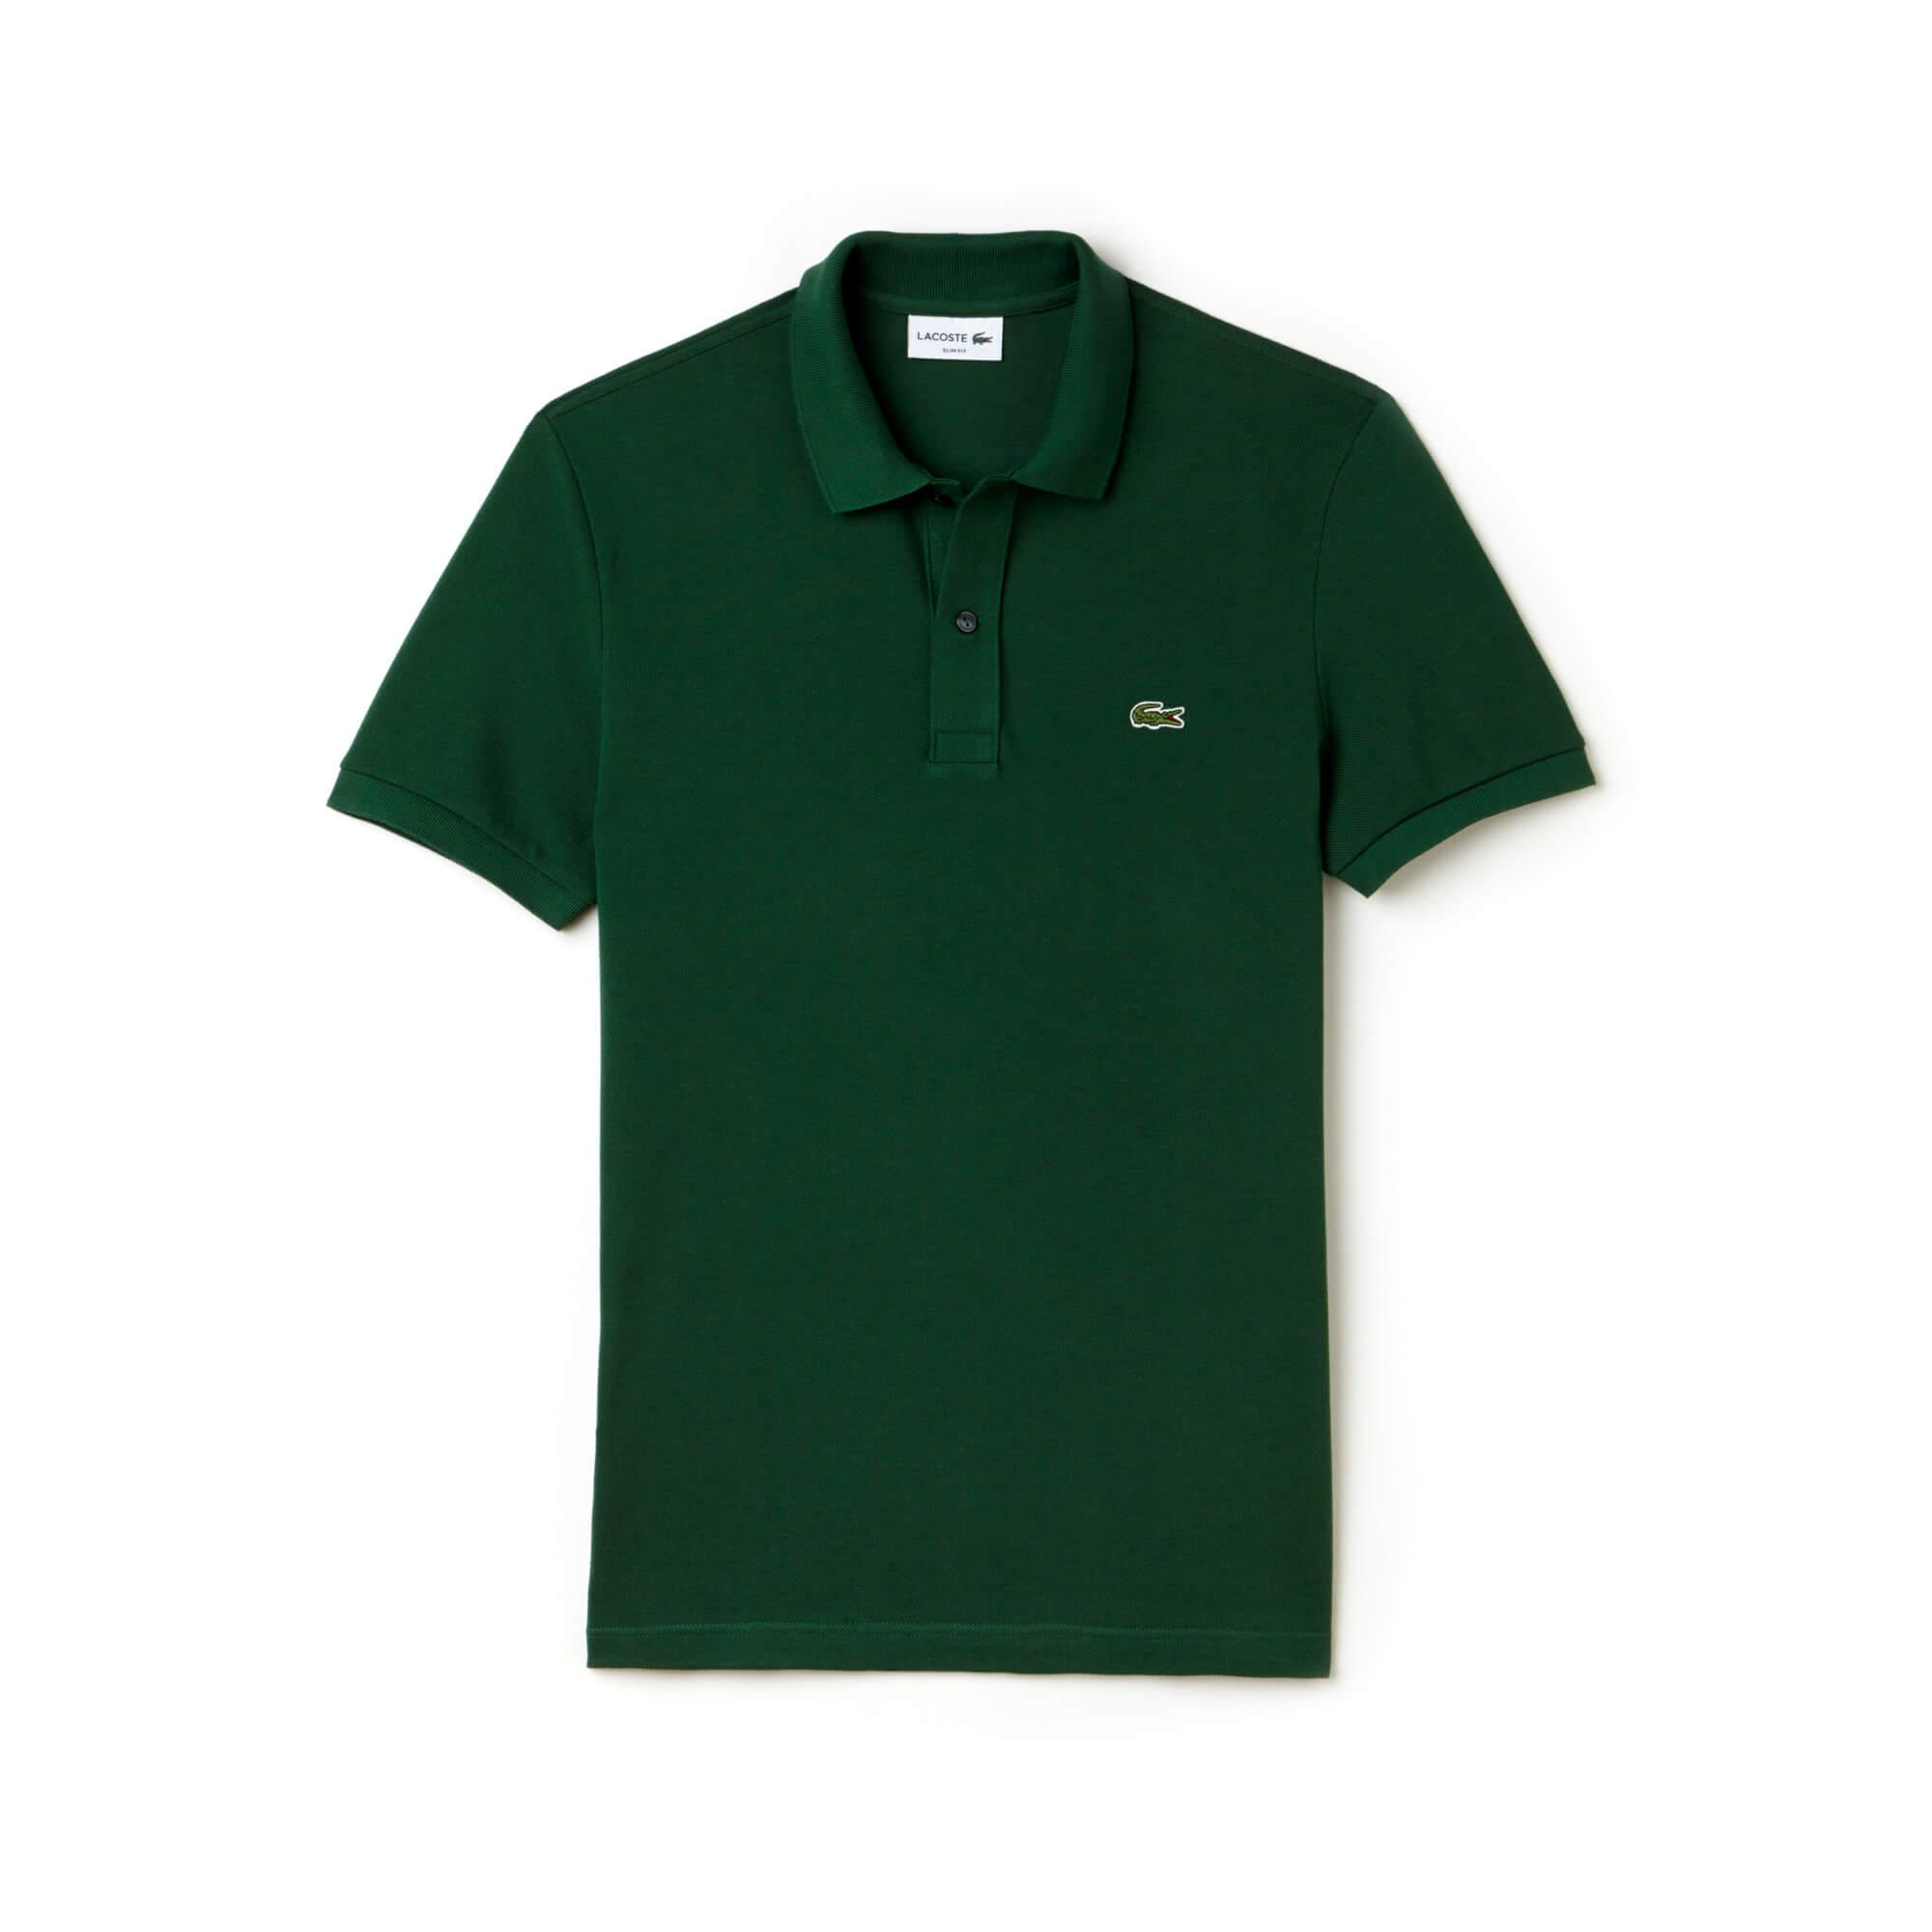 Lacoste Men's Slim Fit Lacoste Polo Shirts in Petit Piqué